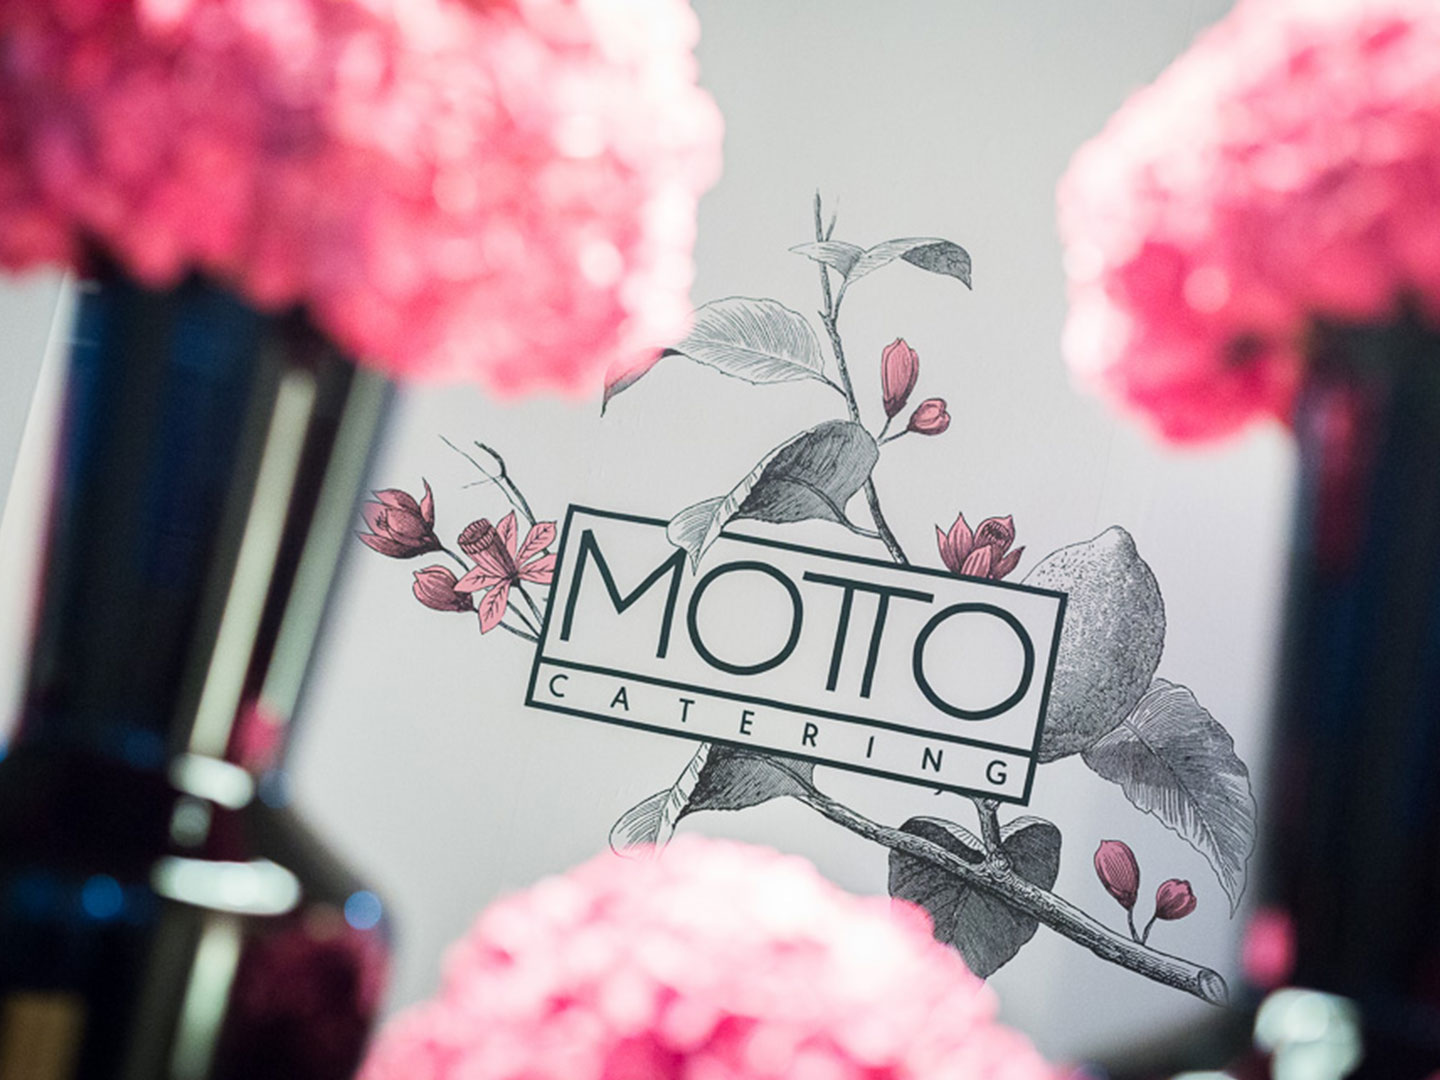 Foto: Services Catering Motto